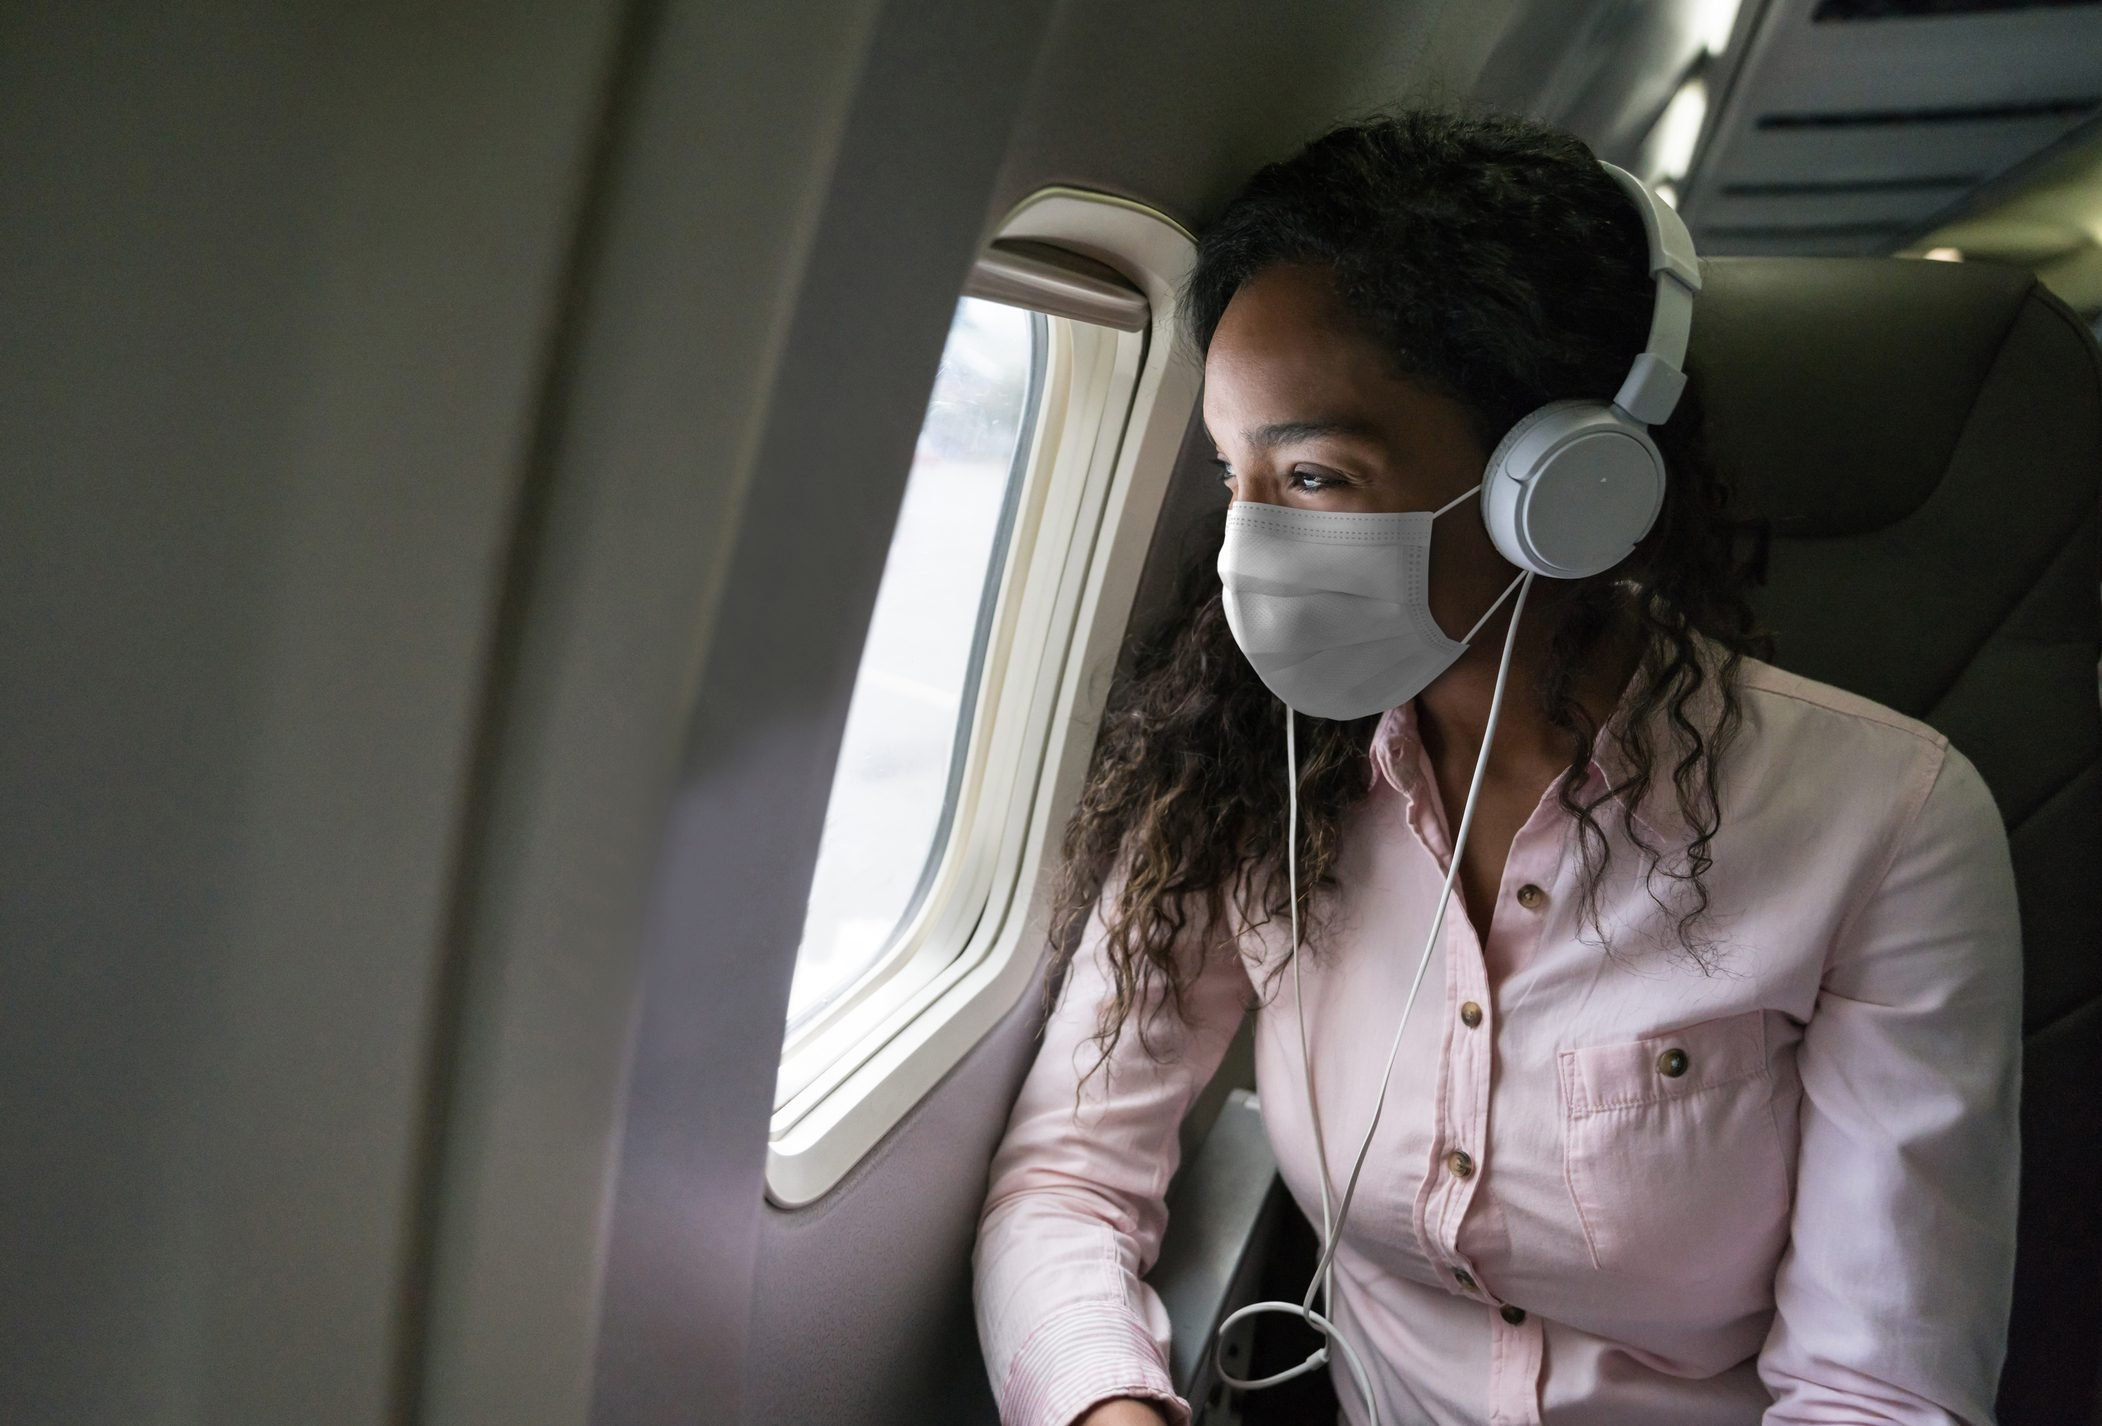 Woman listening to music while flying on an airplane wearing a facemask